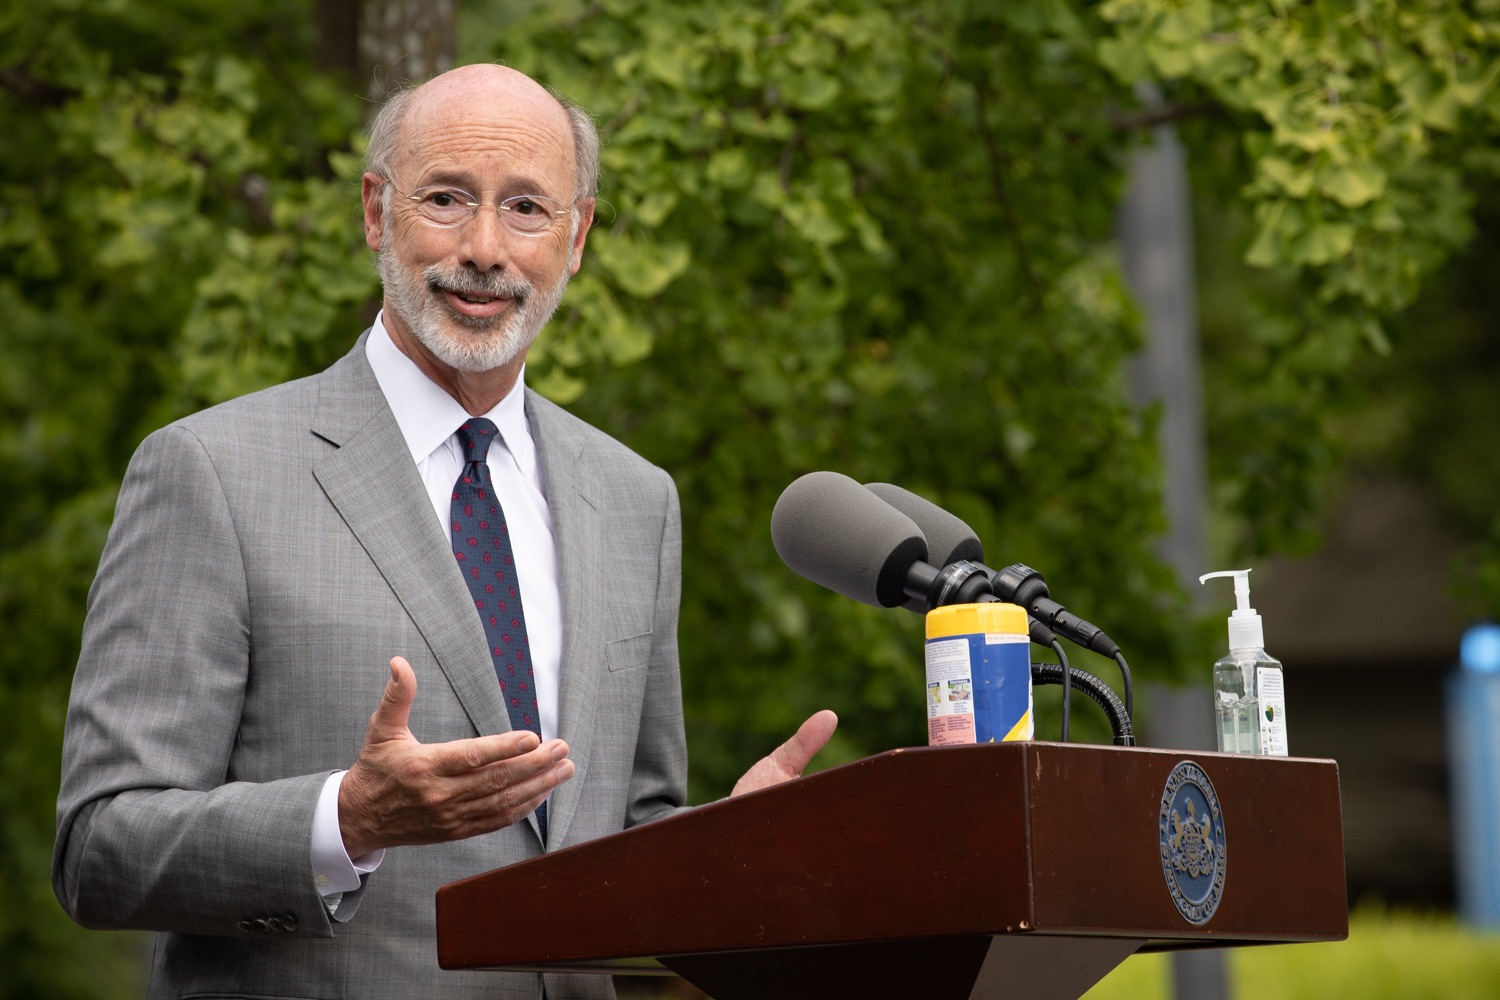 "<a href=""https://filesource.wostreaming.net/commonwealthofpa/photo/18093_gov-healthcare_workers_dz_01.jpg"" target=""_blank"">⇣ Download Photo<br></a>Pennsylvania Governor Tom Wolf answering questions from the press during his visit to Milton S. Hershey Medical Center. As the commonwealth continues its measured, phased reopening and COVID-19 case counts continue to decline, Governor Tom Wolf visited Penn State Milton S. Hershey Medical Center today to thank staff and learn more about how the facility is handling the pandemic and preparing for a possible resurgence in the fall.  Harrisburg, PA  June 24, 2020"